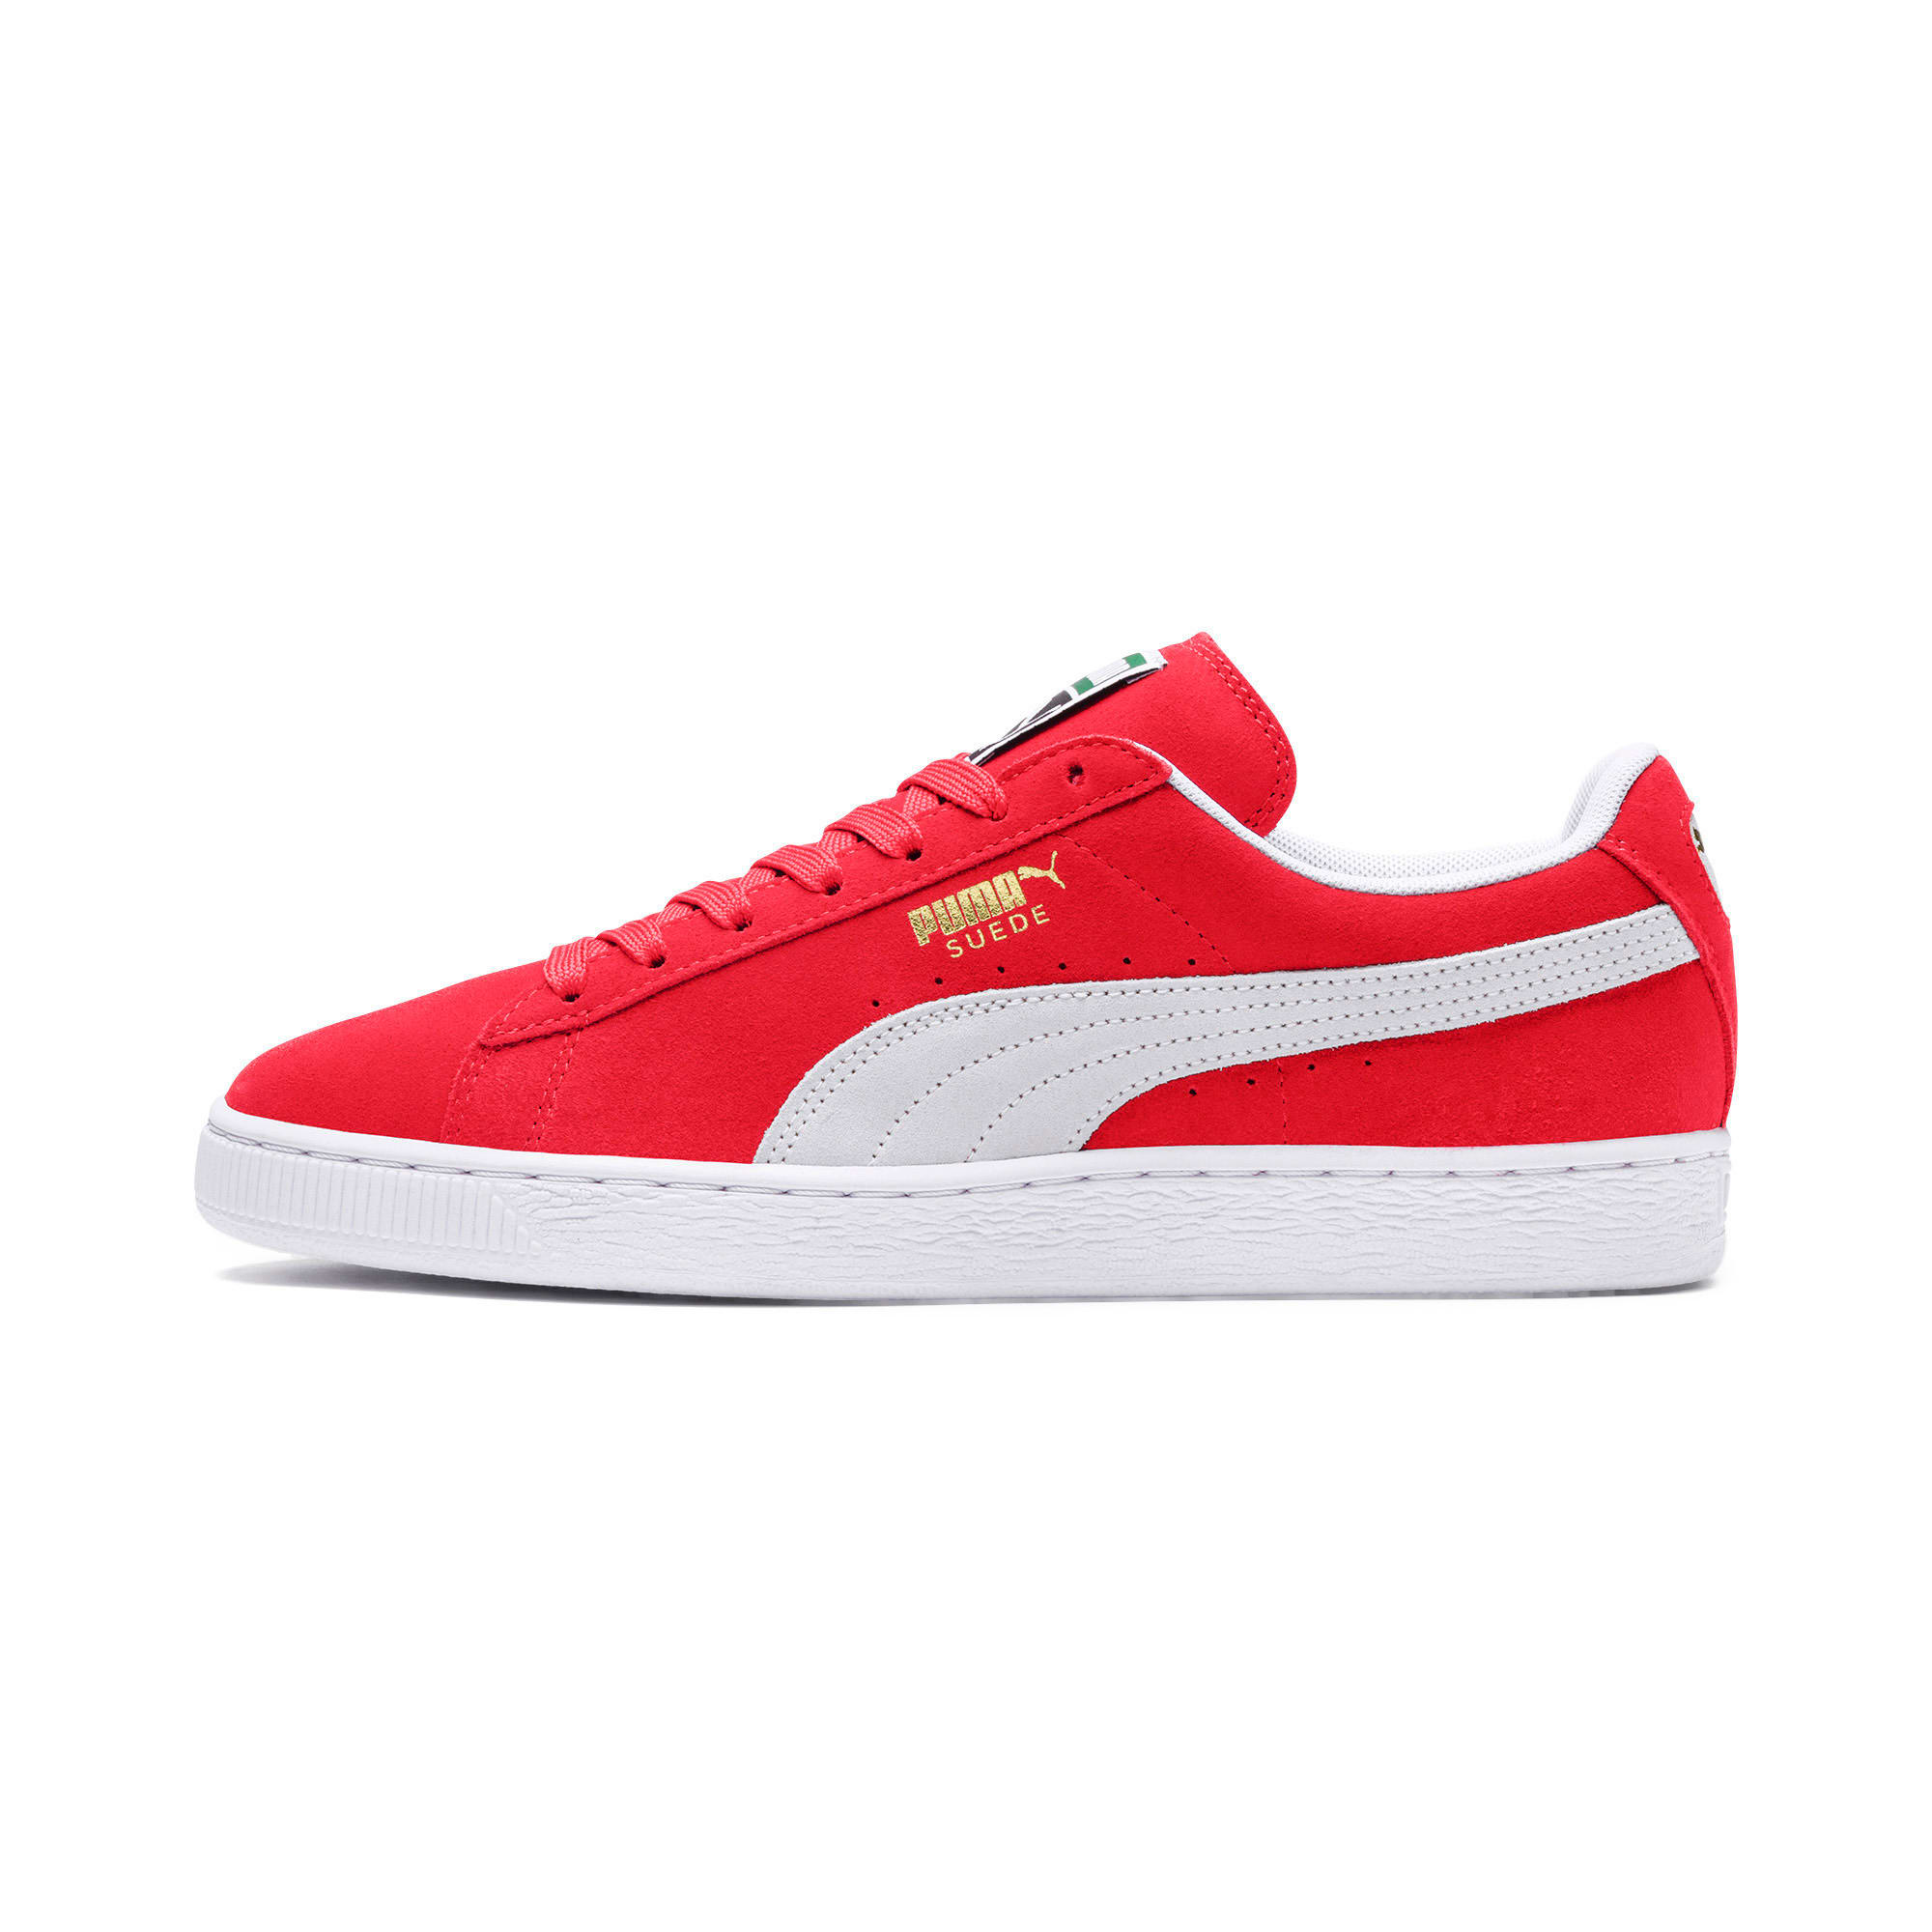 Thumbnail 1 of Suede Classic+ Sneakers, team regal red-white, medium